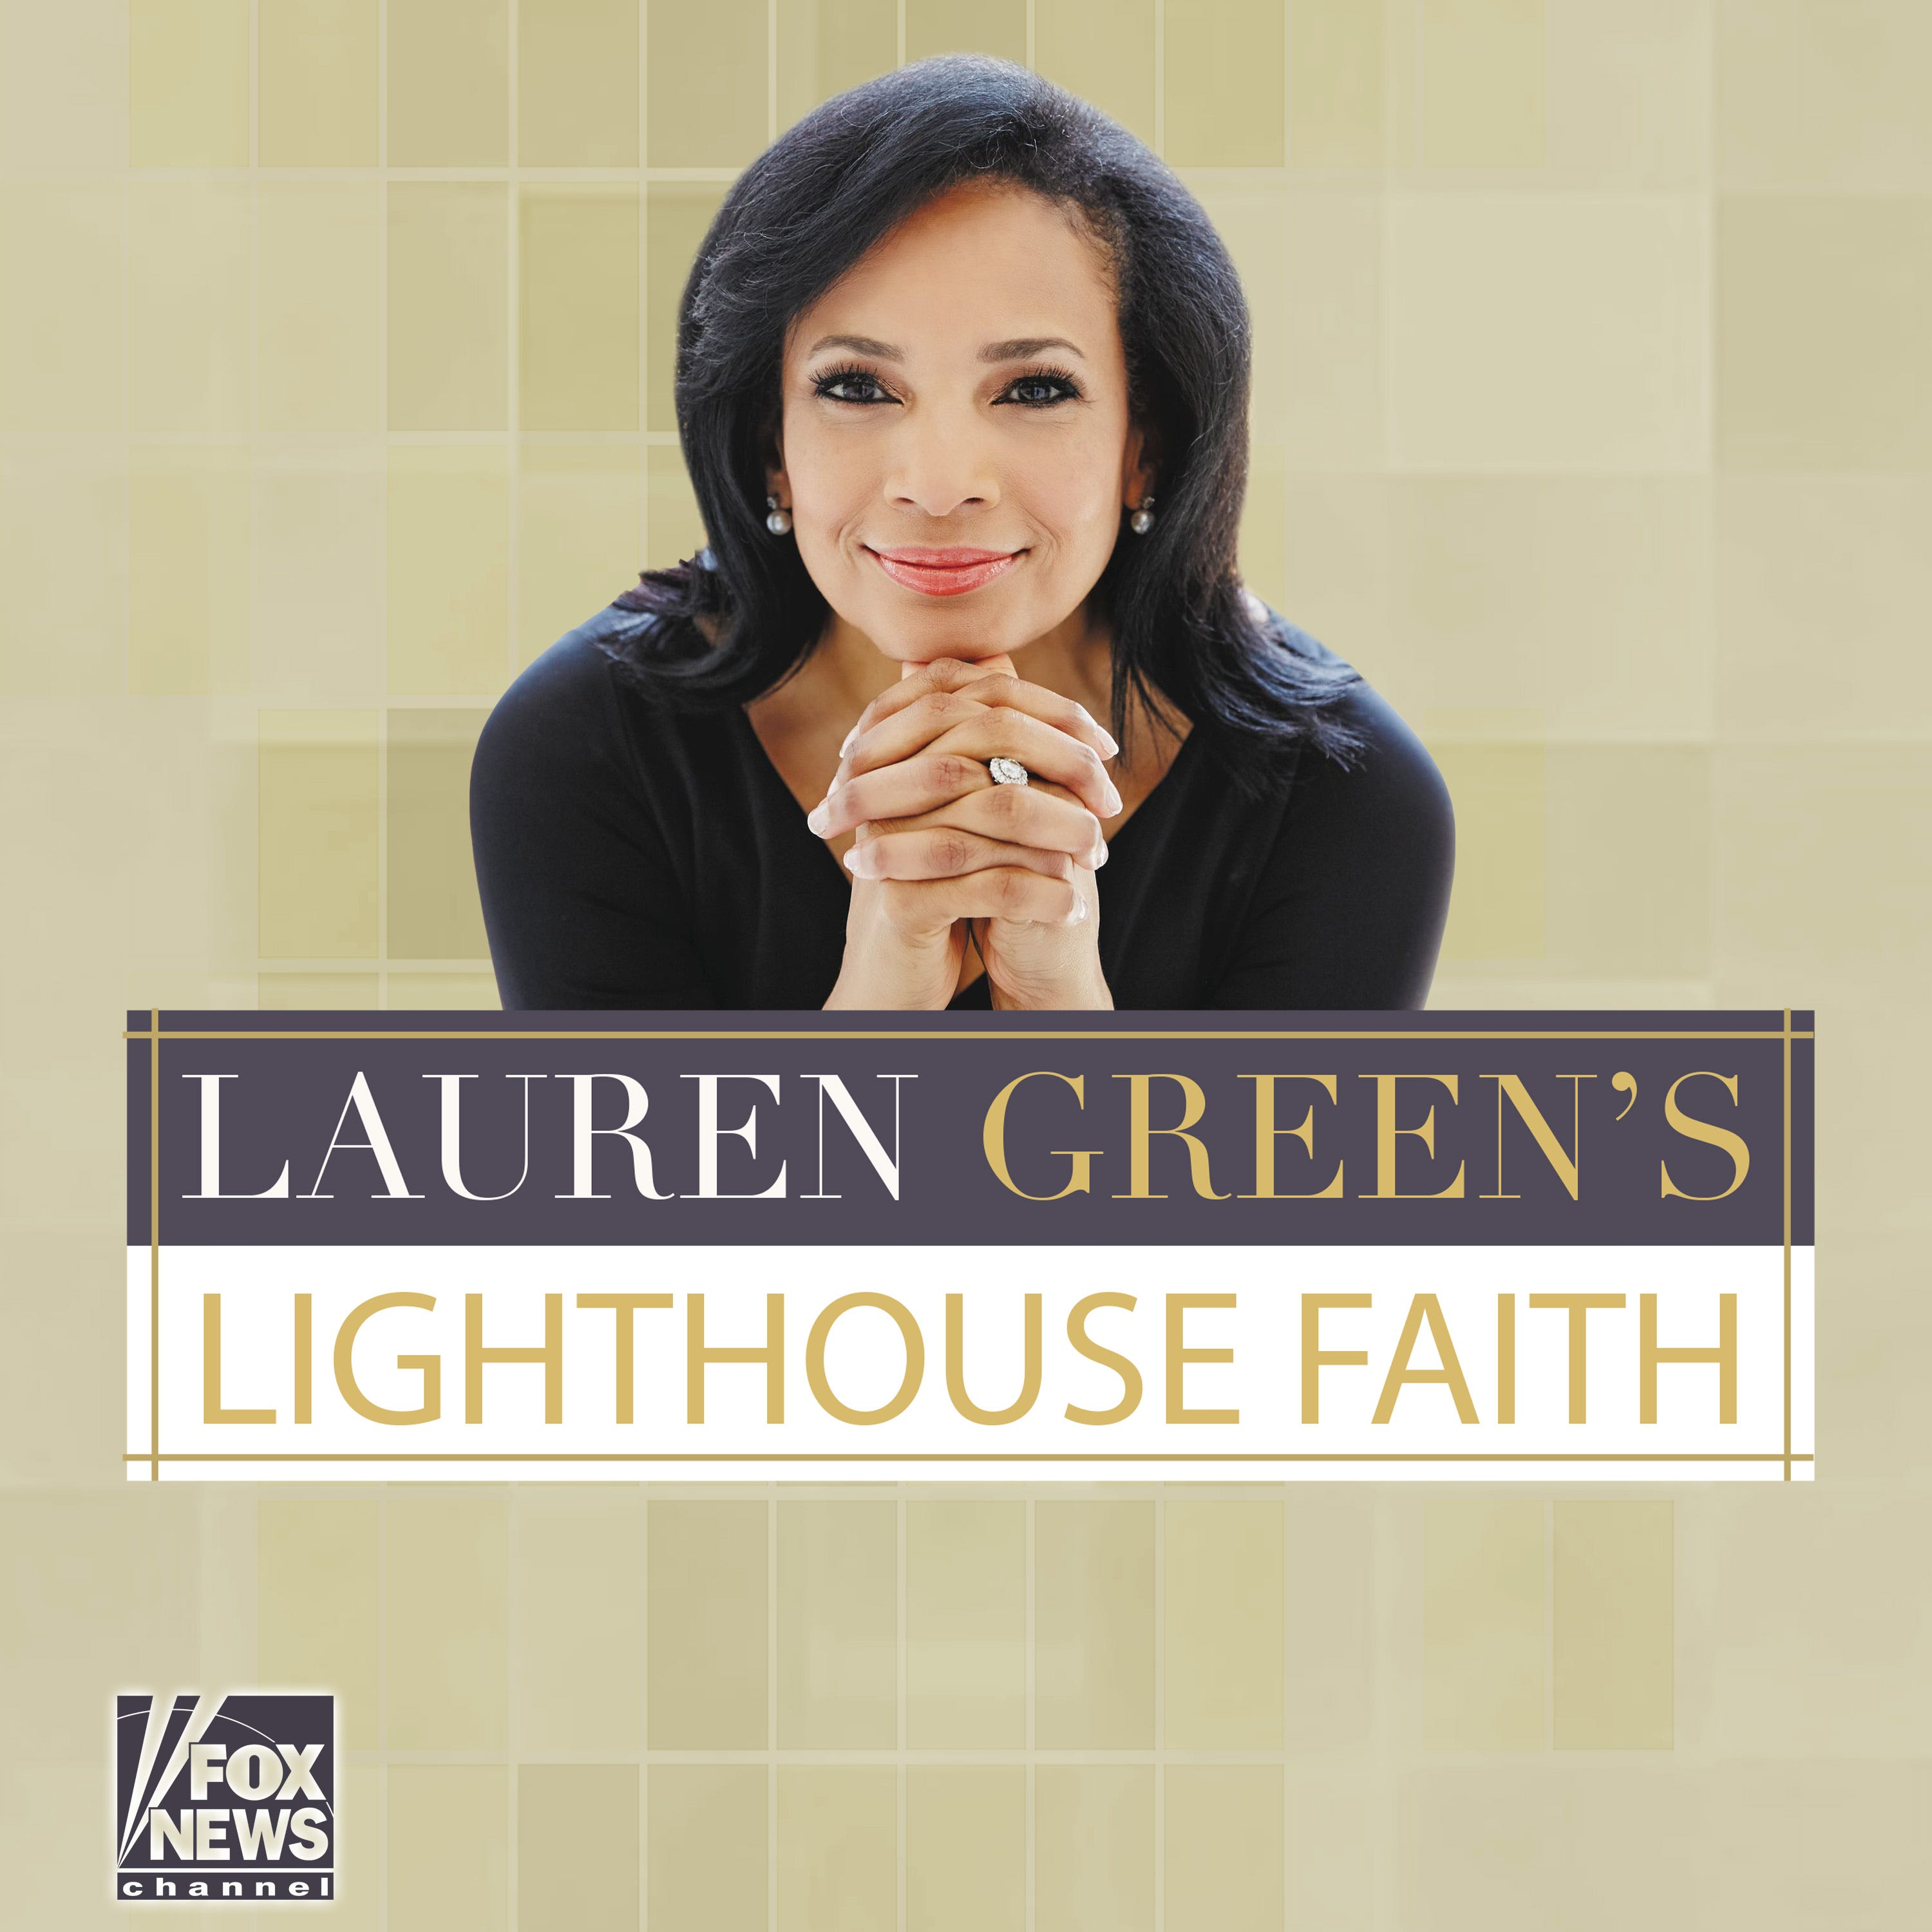 Lighthouse Faith